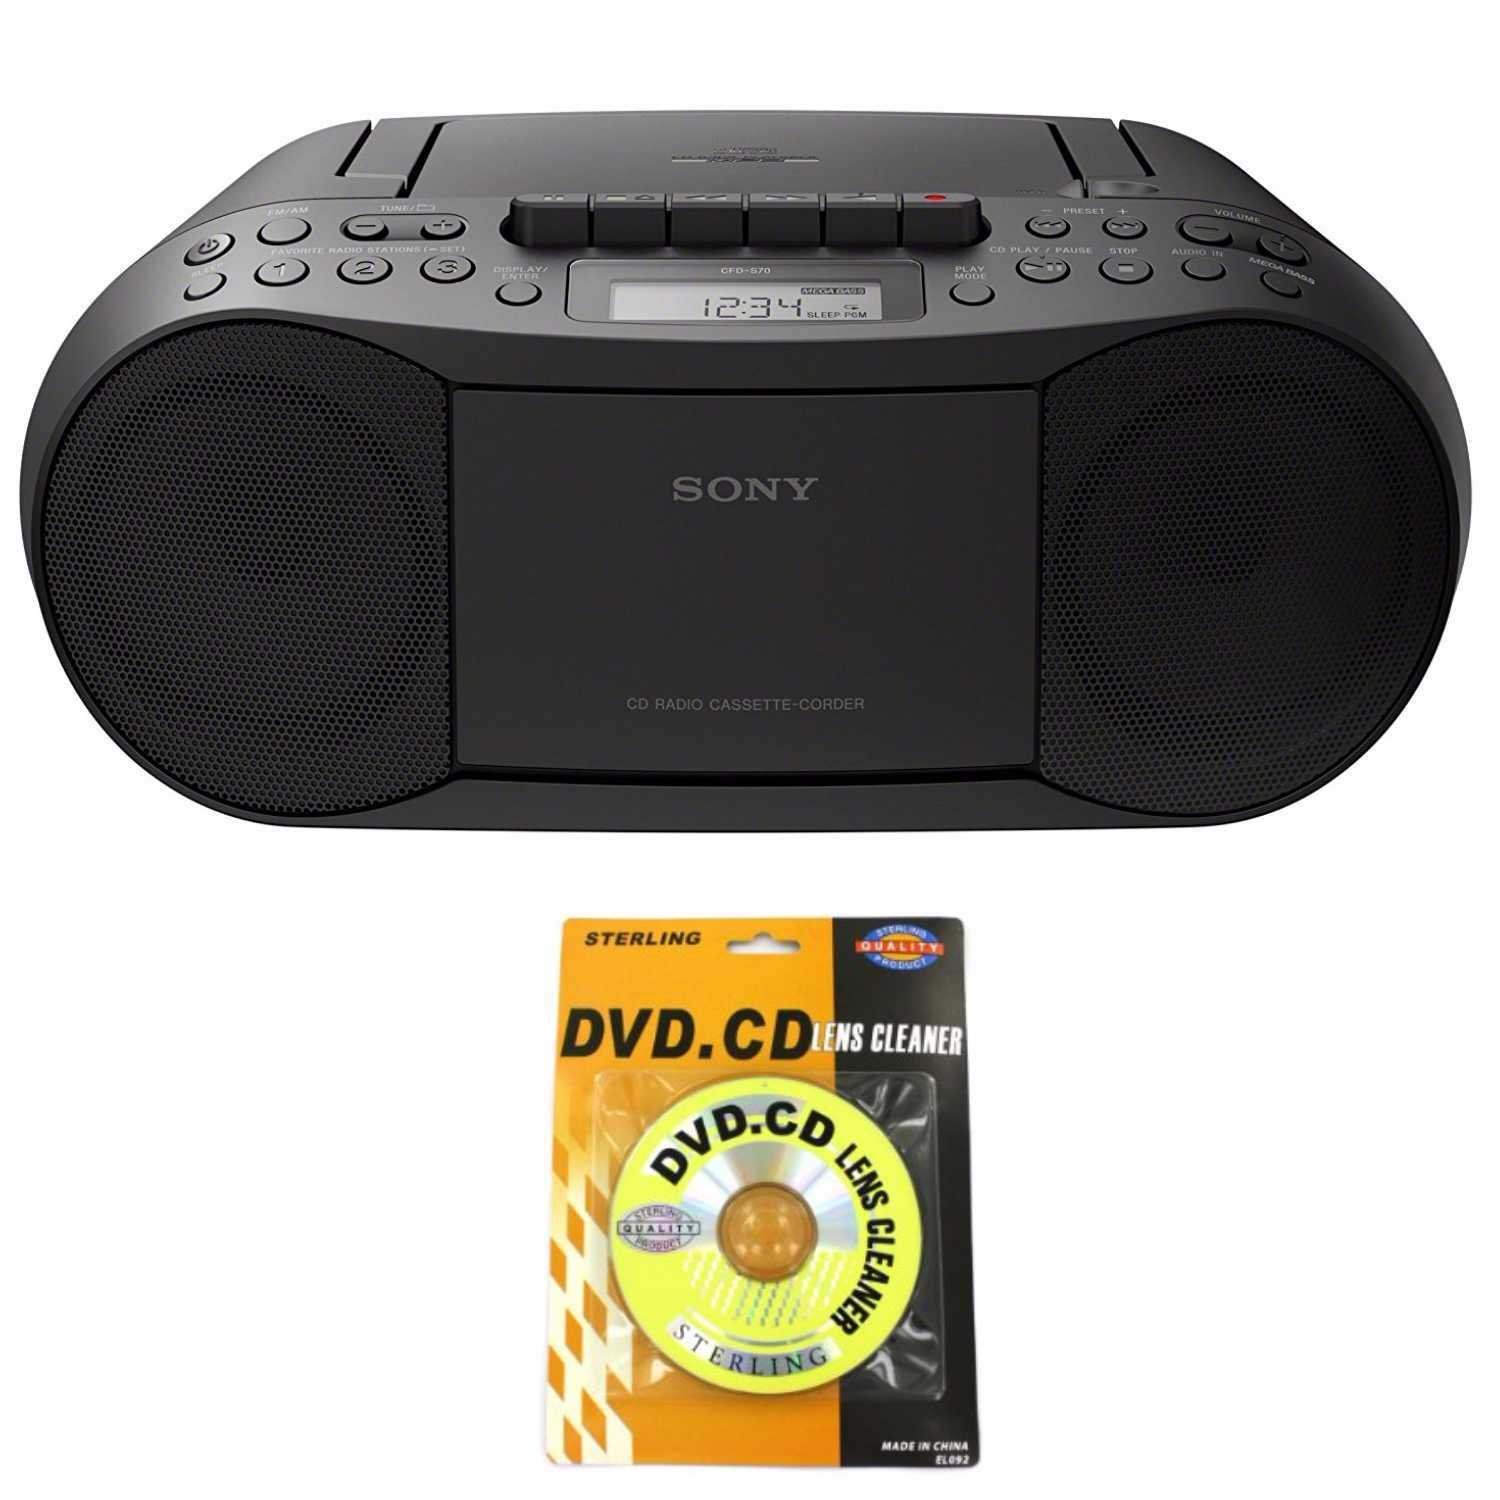 Sony Portable Full Range Stereo Boombox Sound System with MP3 CD Player, AM/FM Radio, 30 Presets, Headphone and AUX Jack - Bonus DB Sonic CD Head Cleaner